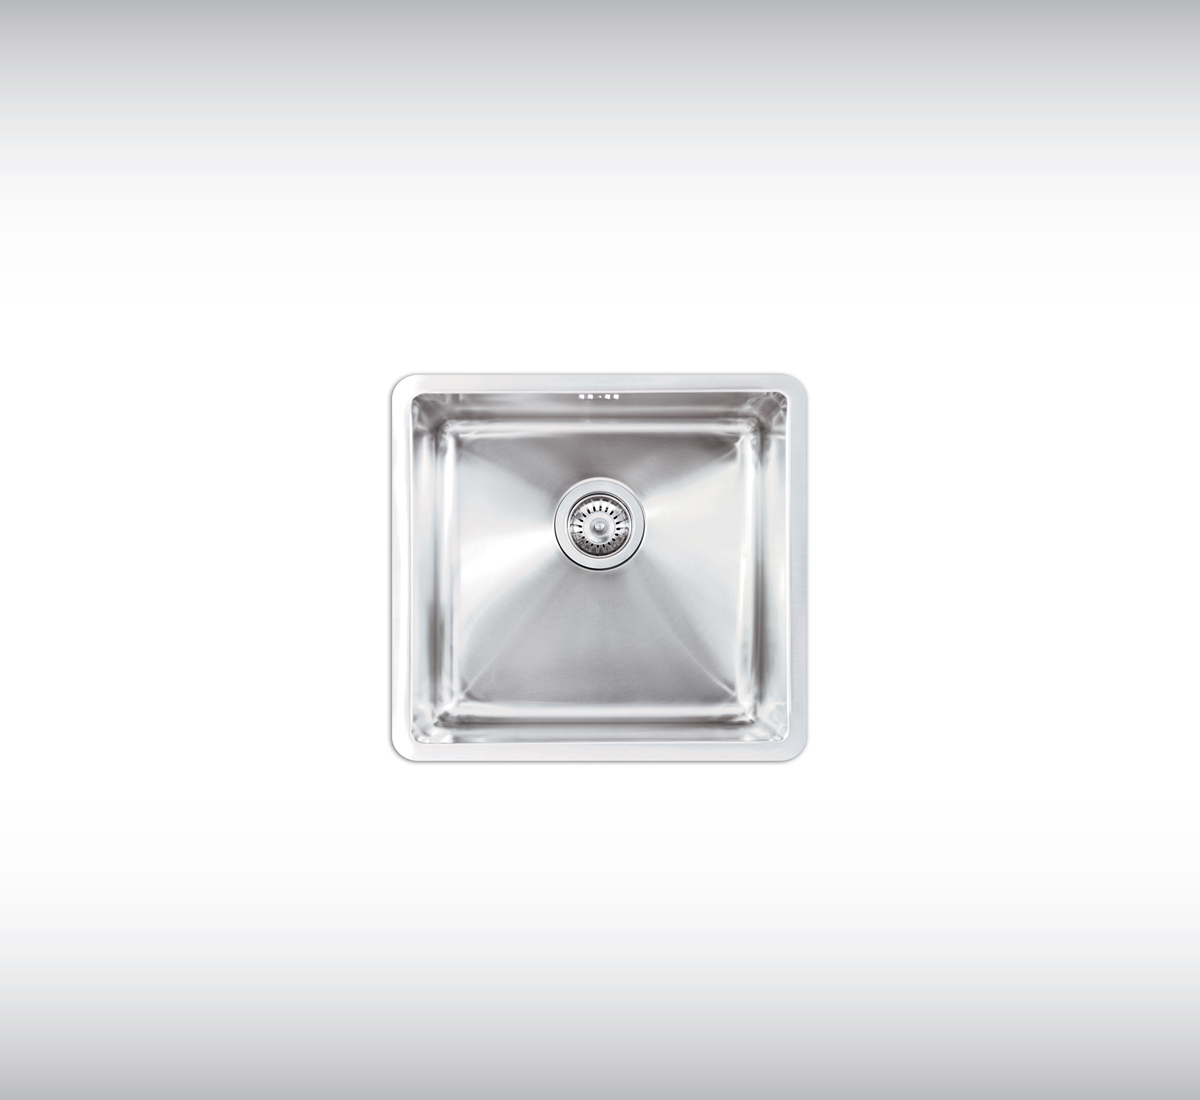 Stainless Steel Sink GINO-480